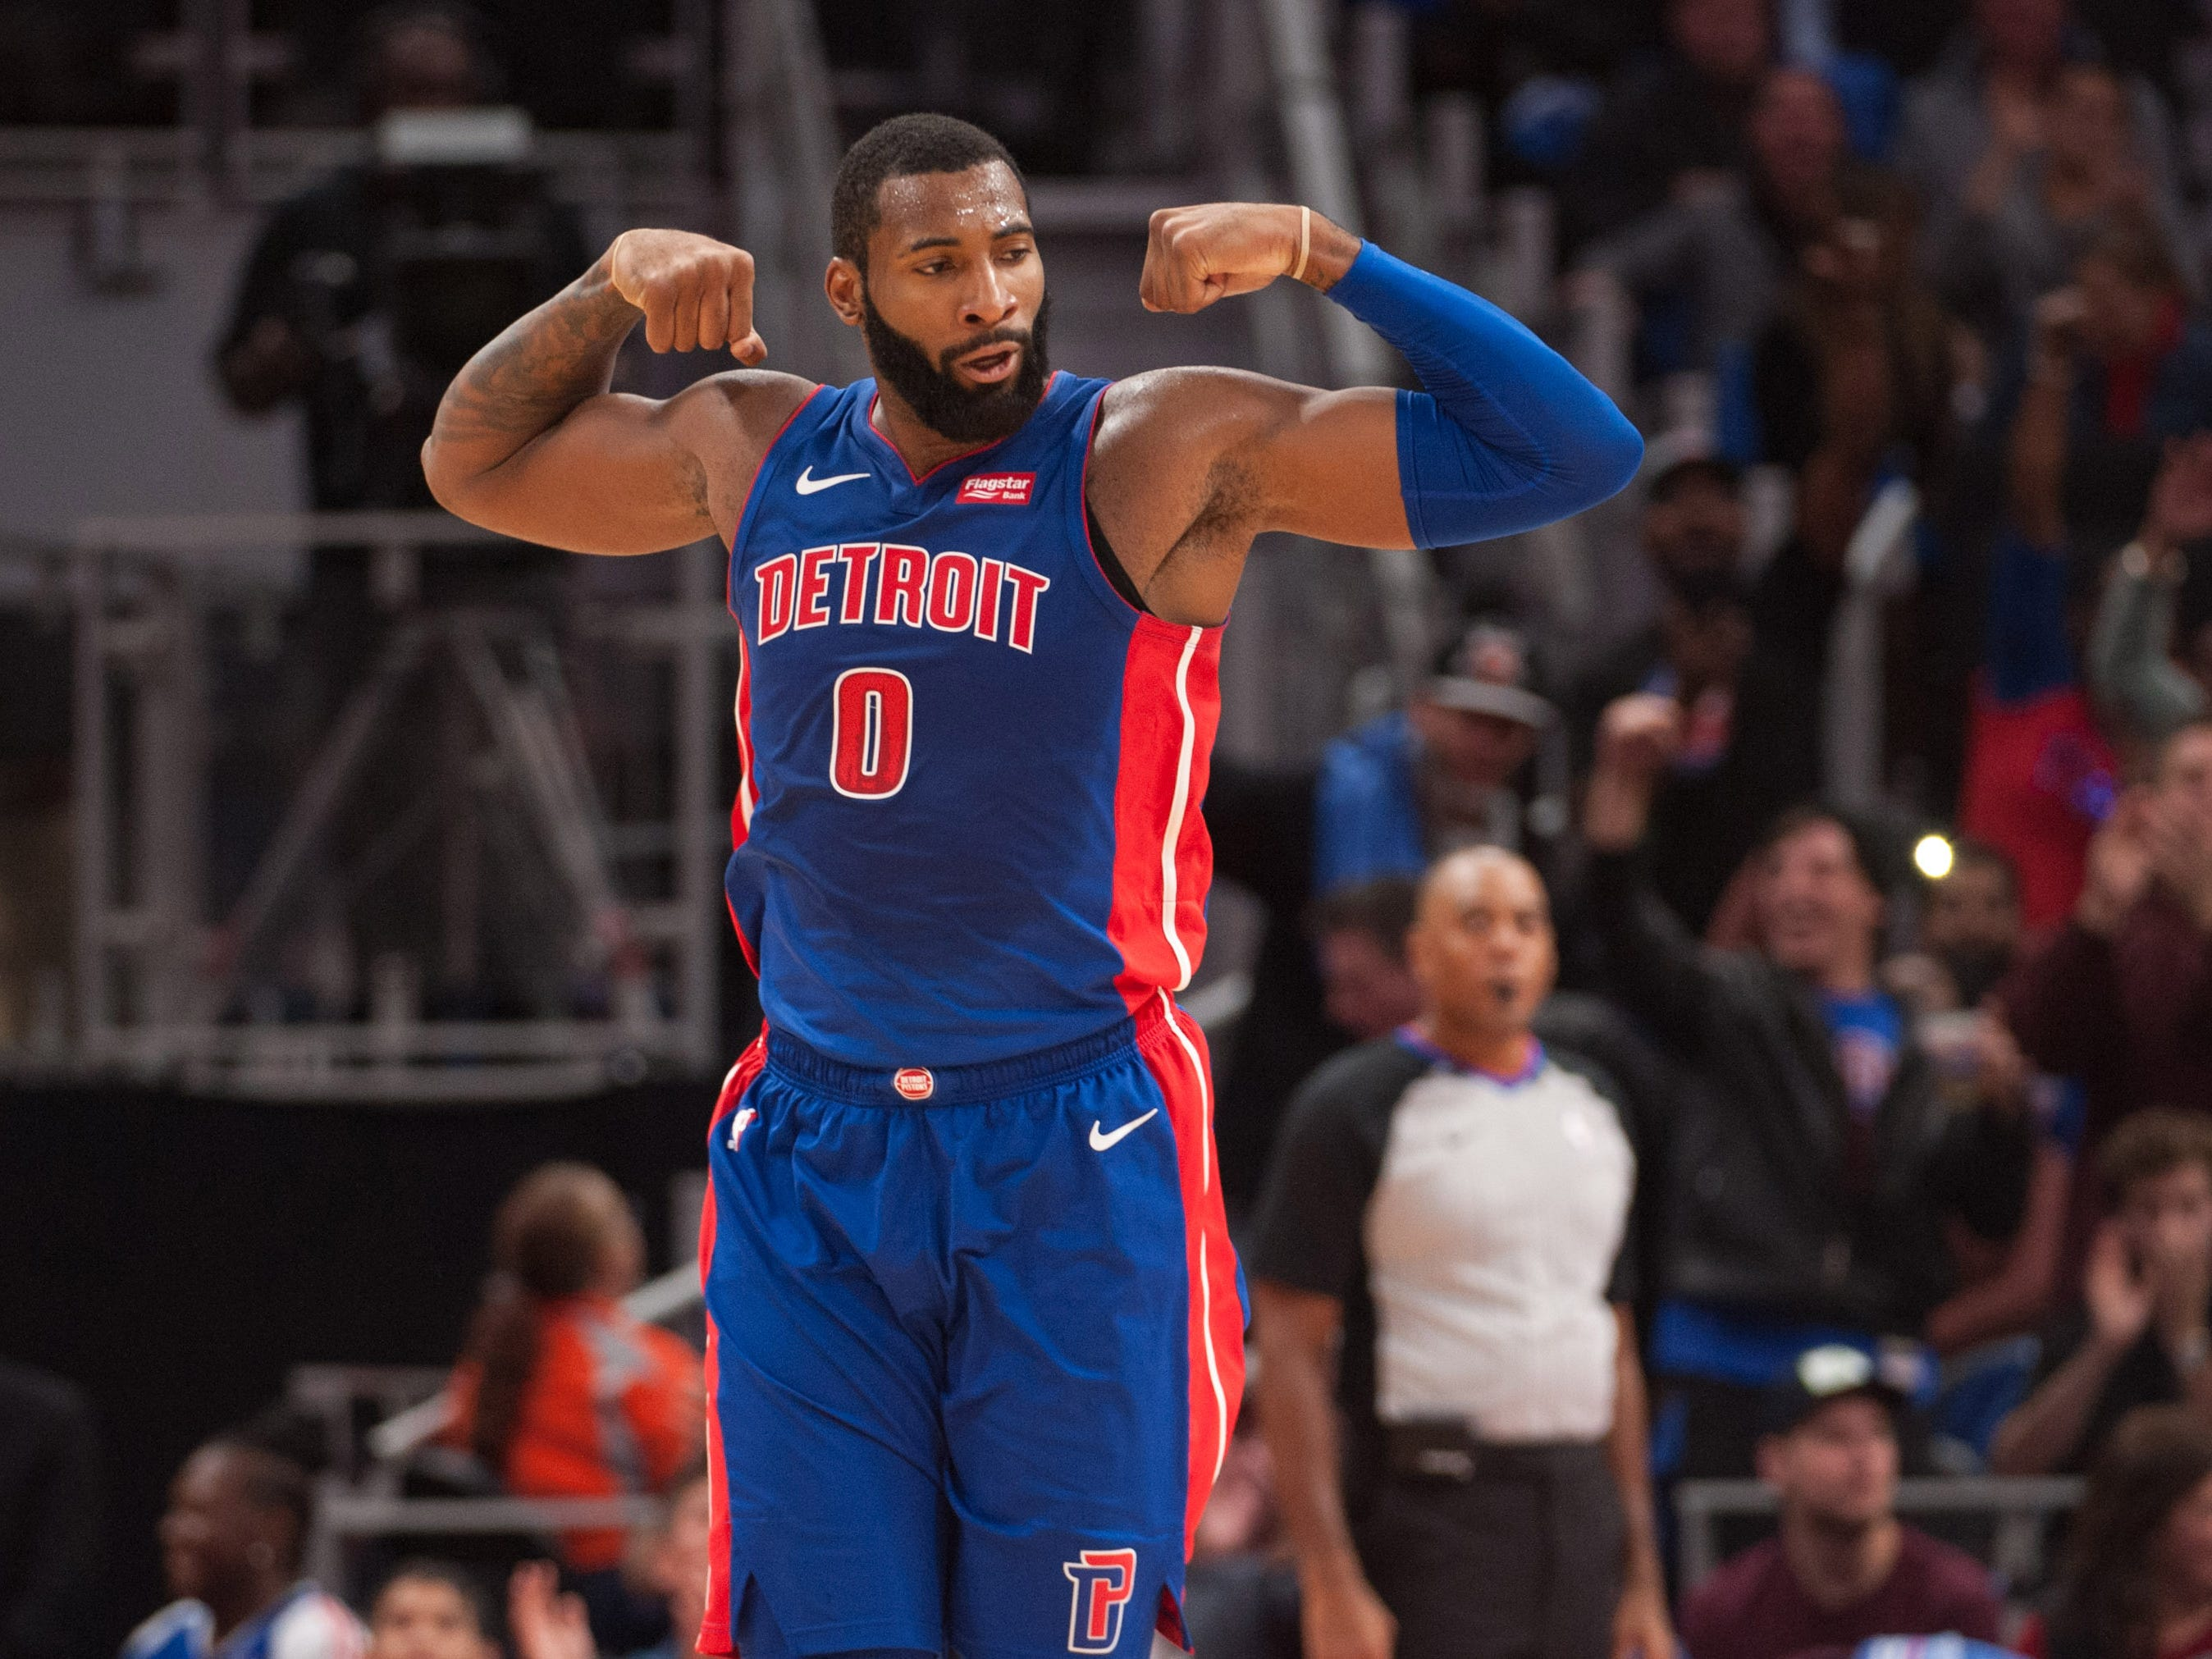 Oct. 17: Andre Drummond celebrates during the third quarter against the Brooklyn Nets at Little Caesars Arena.